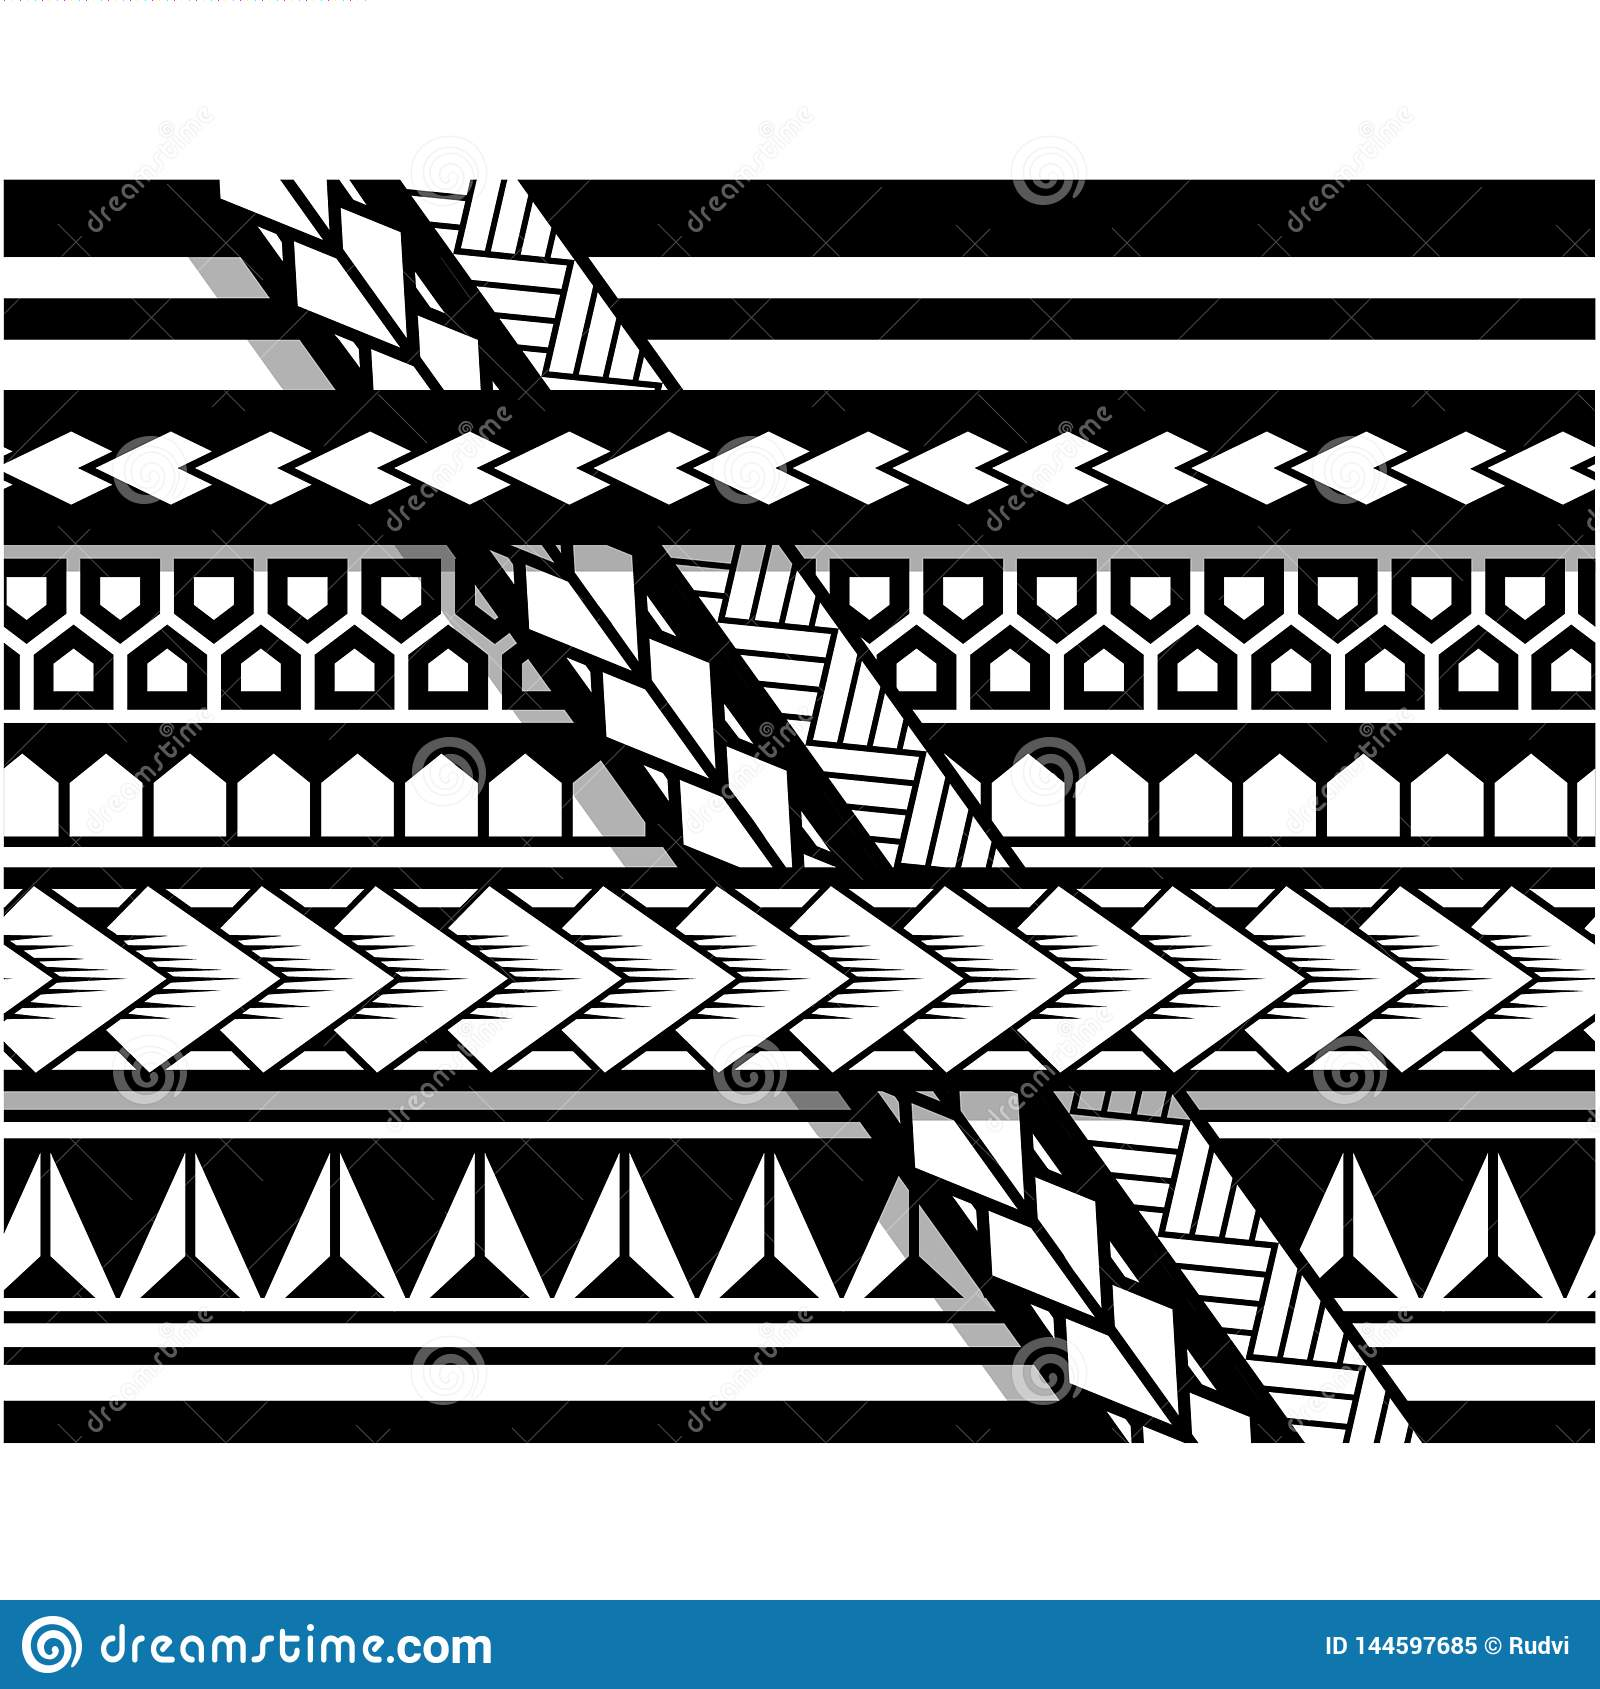 5062b74233058 Polynesian tattoo sleeve pattern , samoan sketch forearm and foot design, maori  stencil bracelet armband tattoo tribal, band fabric template seamless ...